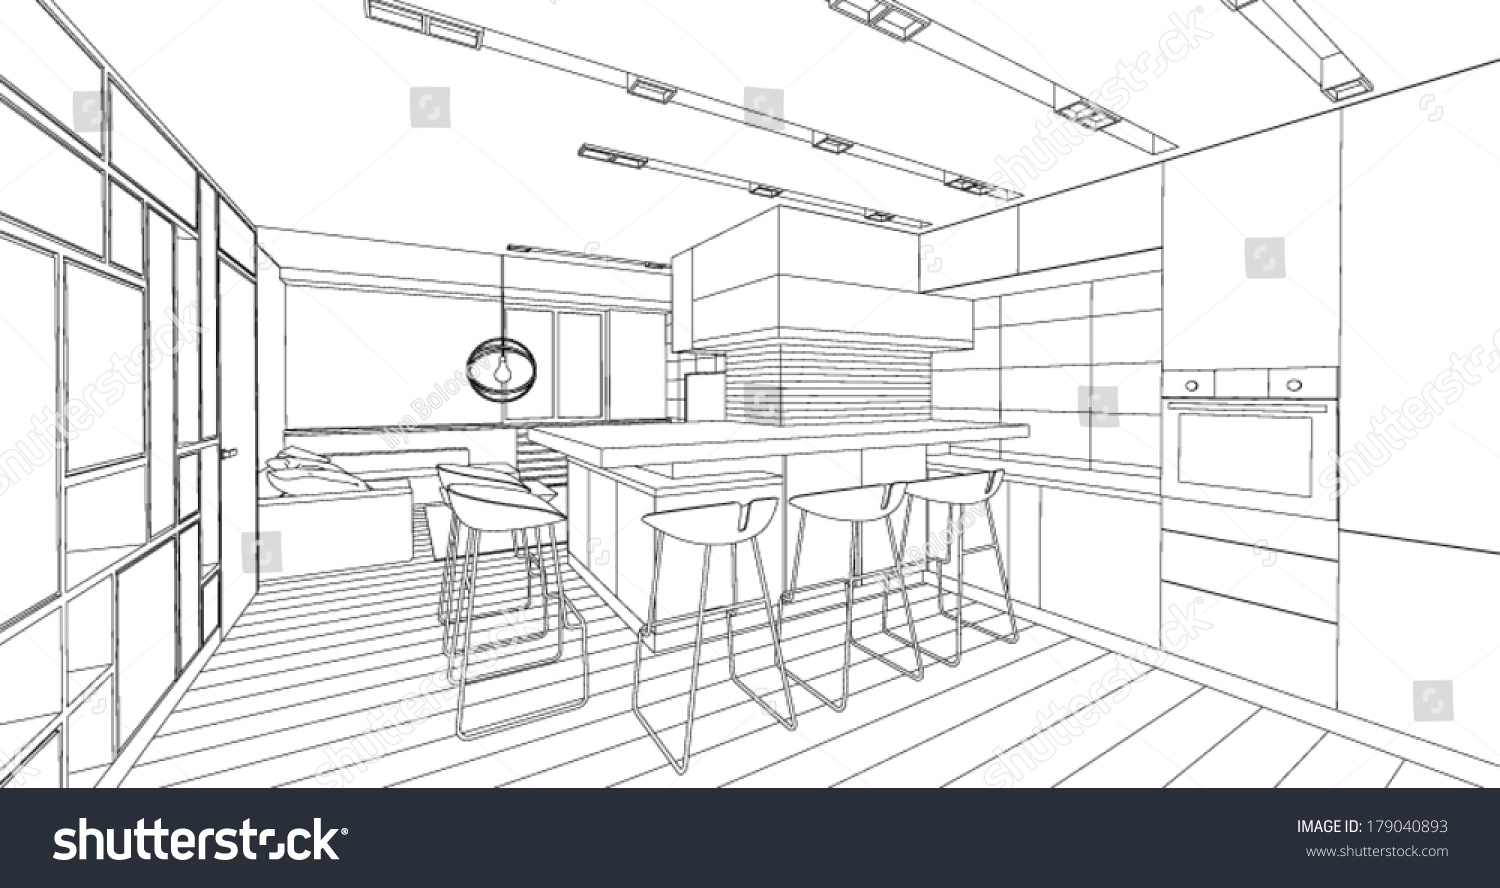 Living room drawing design - Interior Vector Drawing Architectural Design Living Room